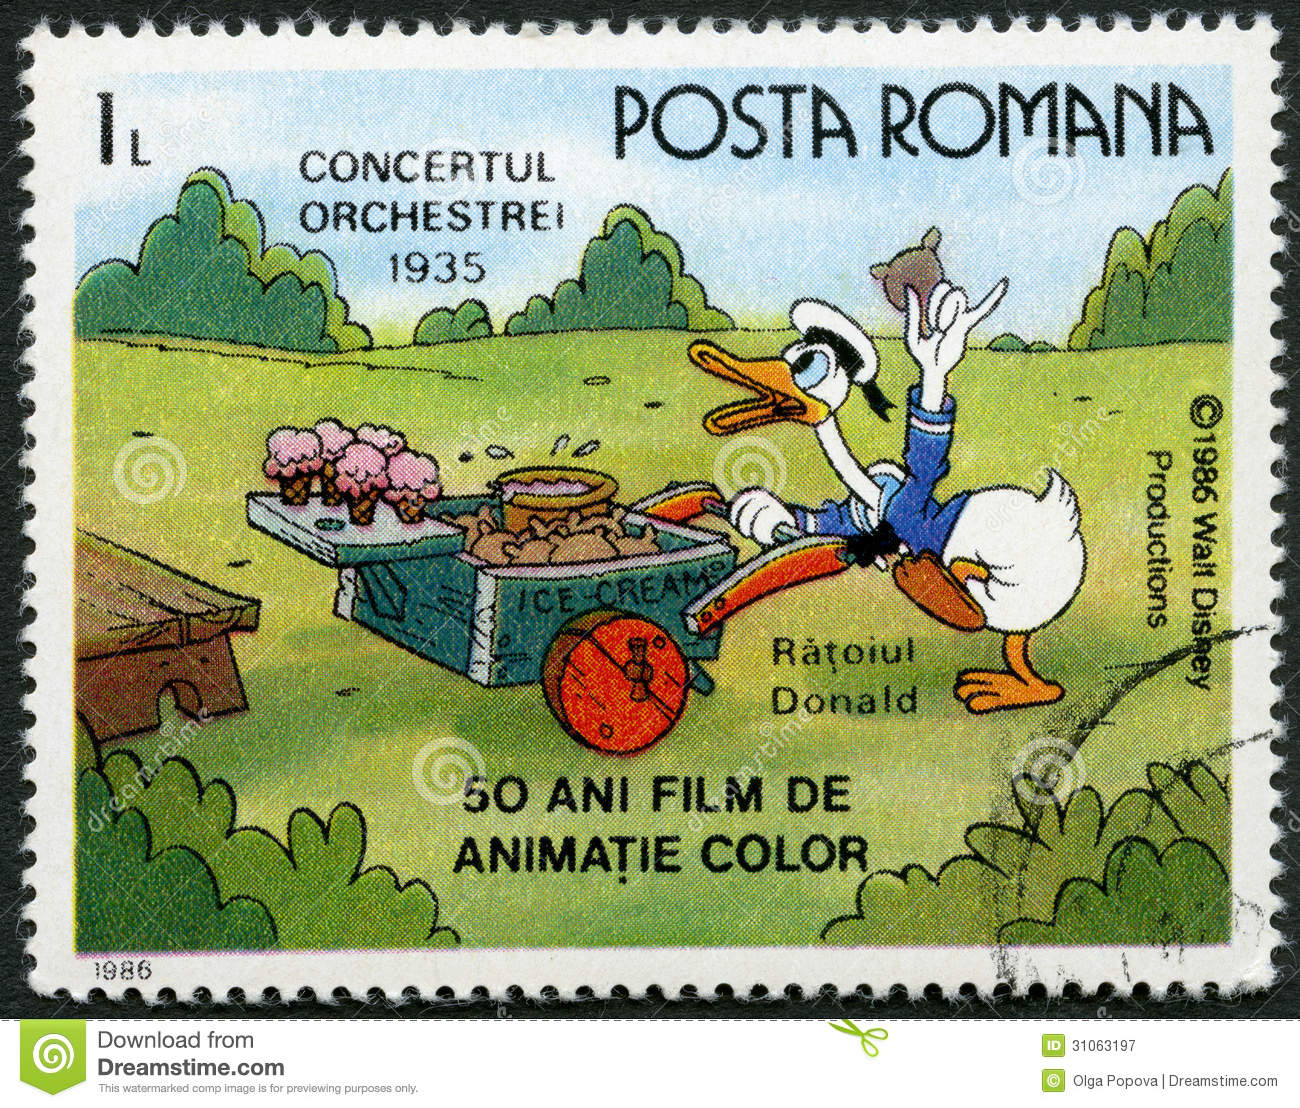 Donald duck band clipart.